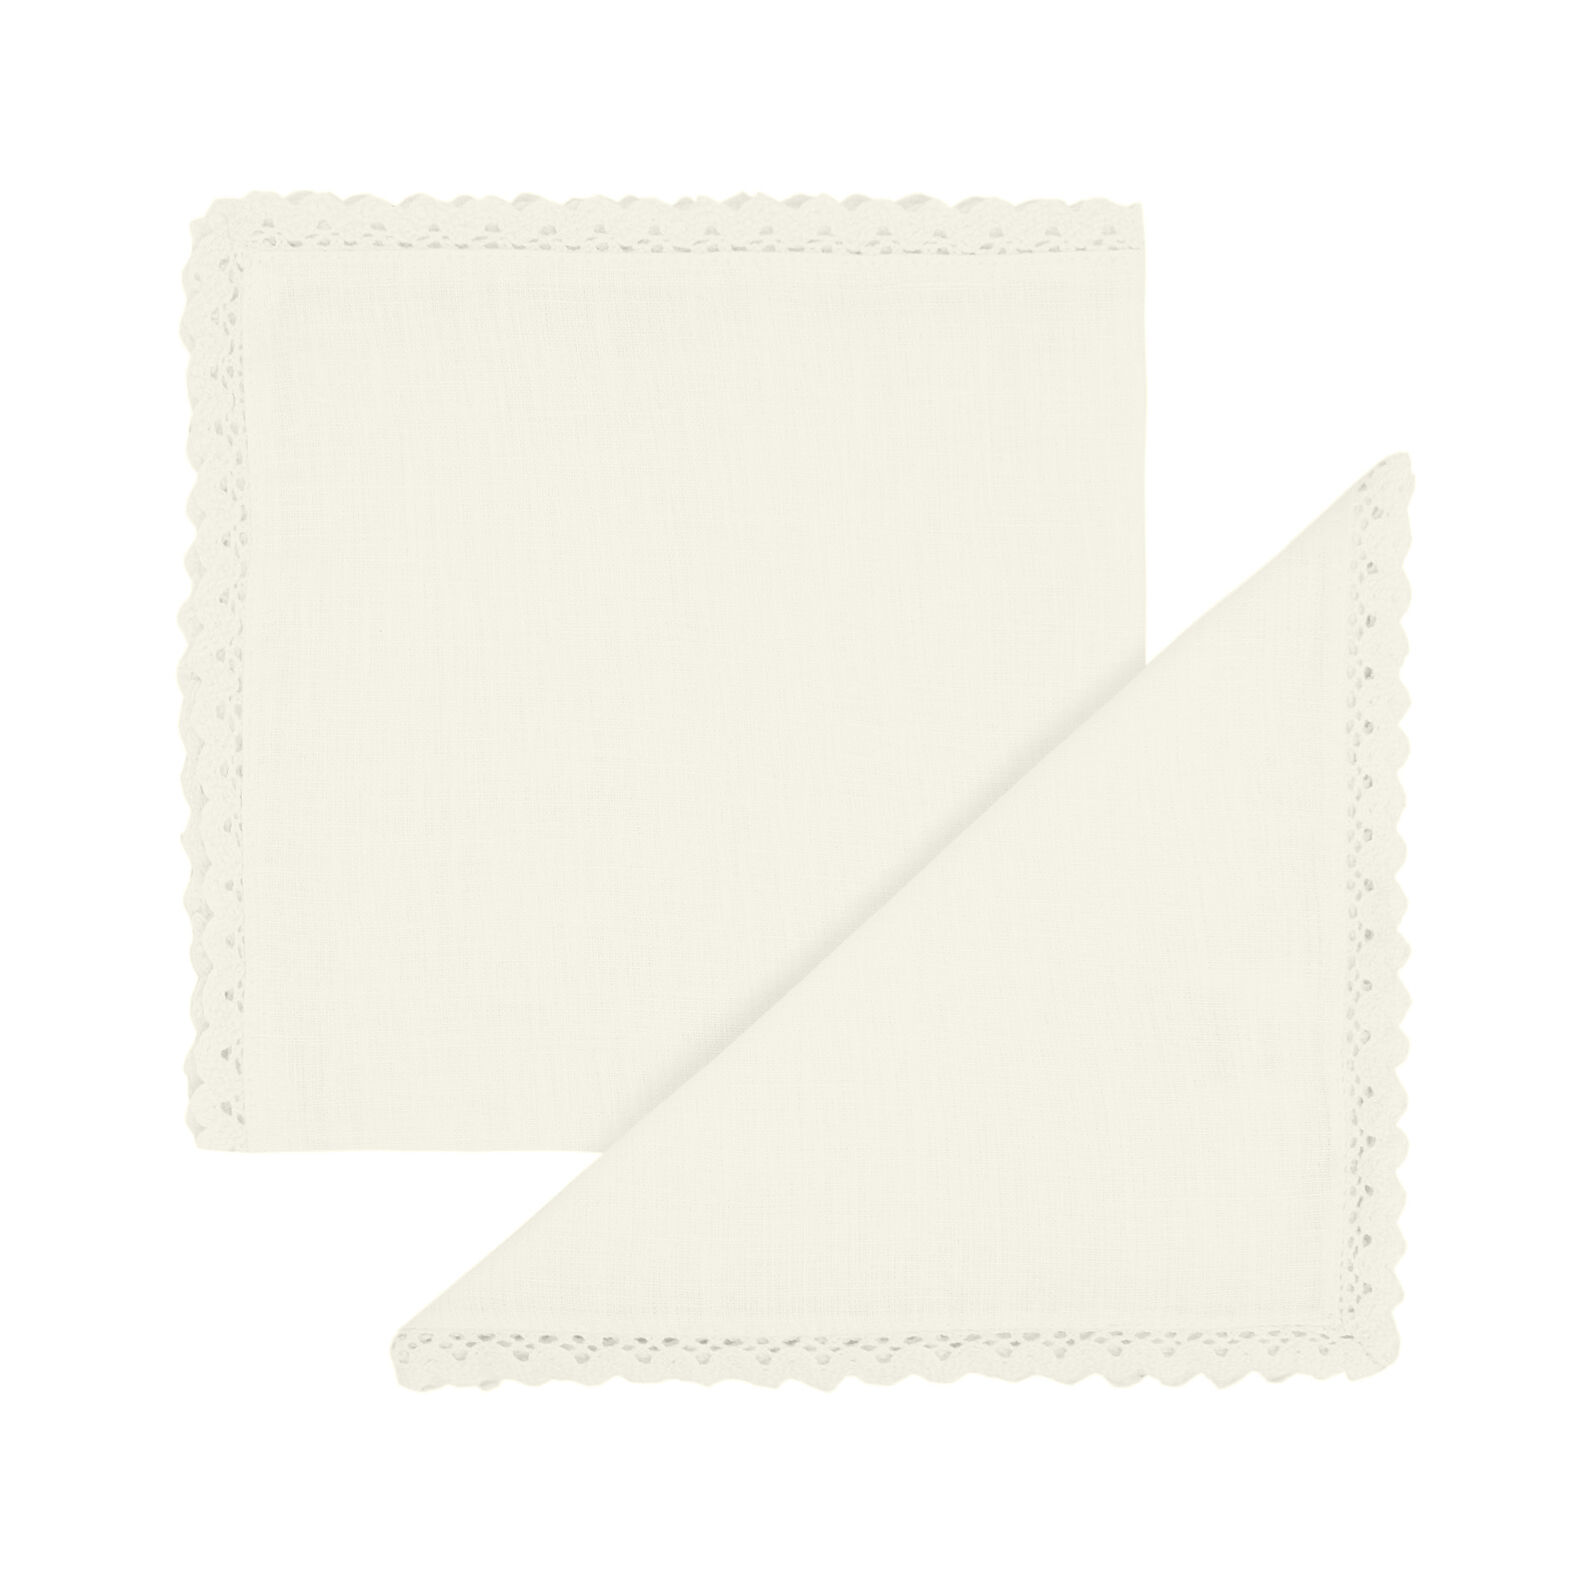 2-pack napkins in 100% linen with lace edging